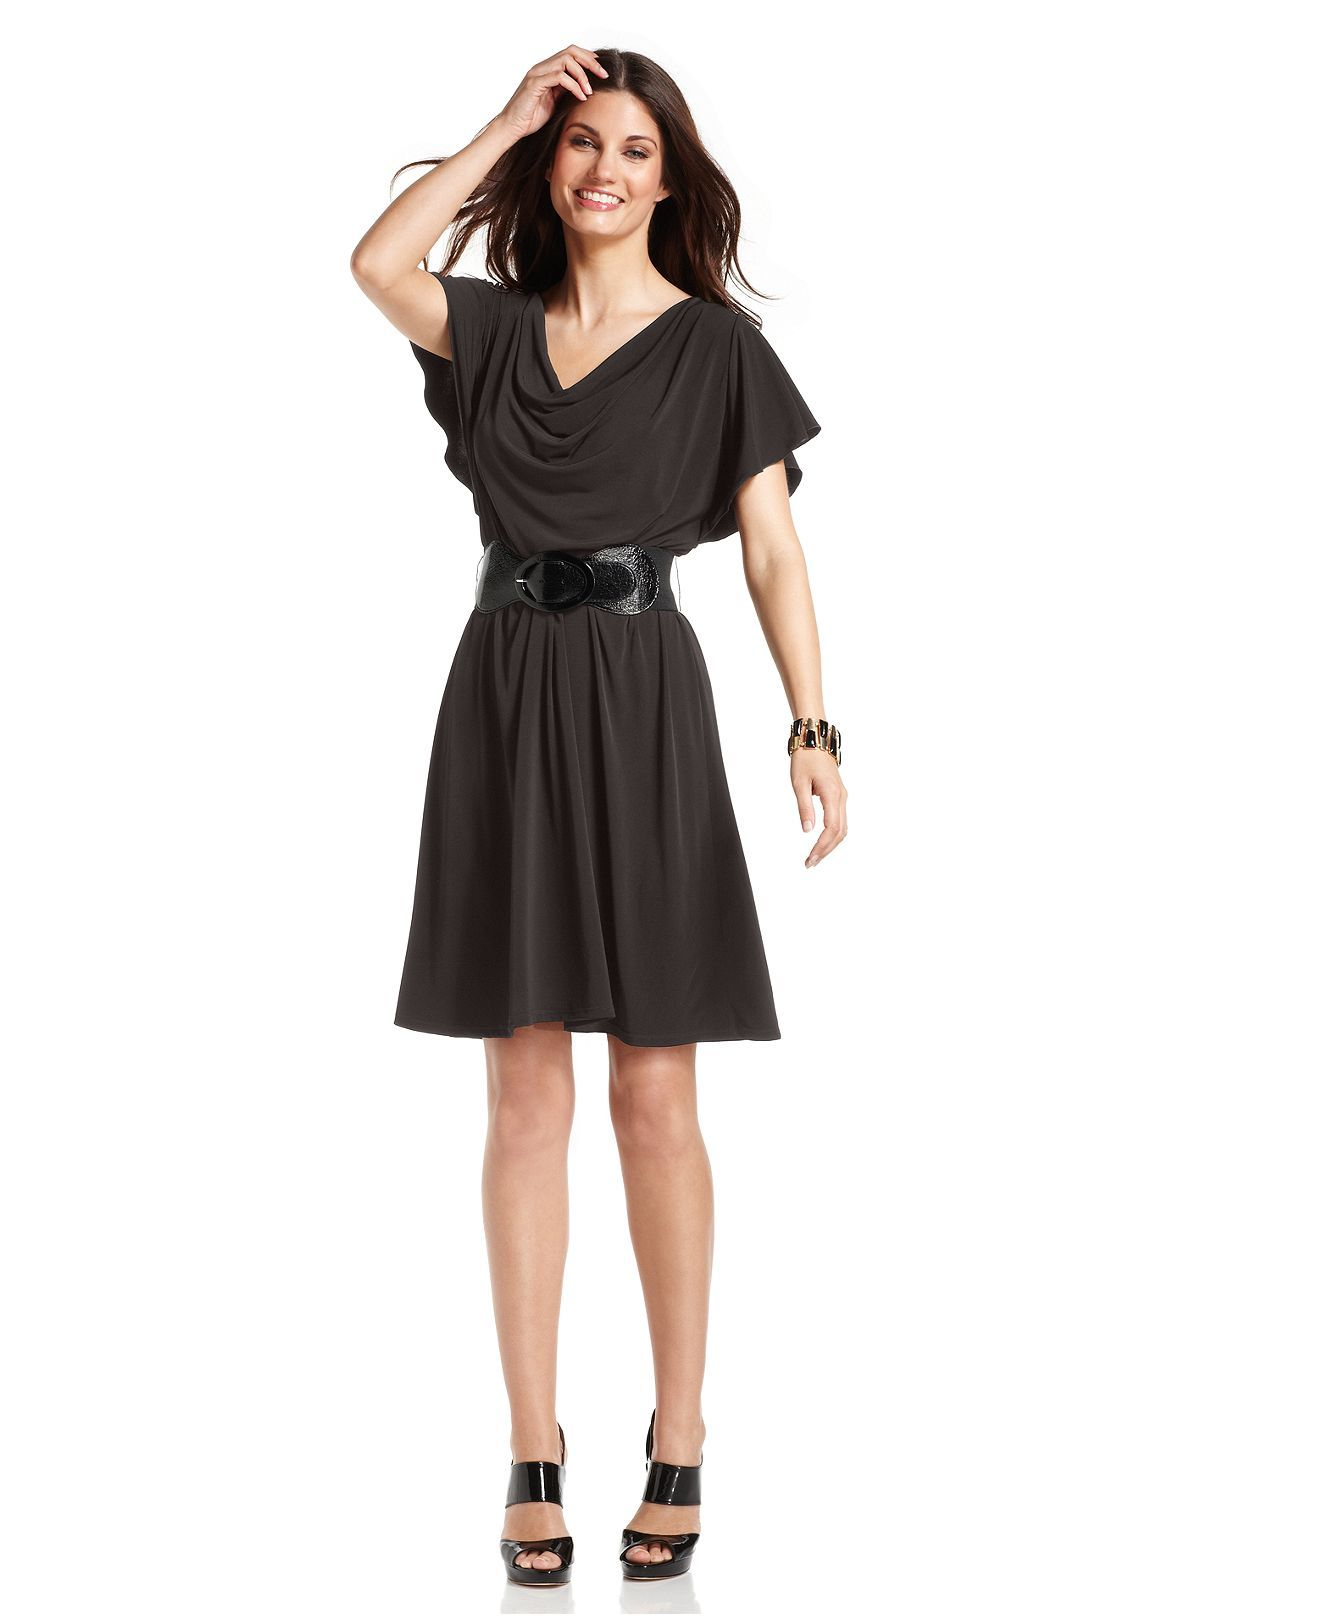 Agb dress flutter sleeve cowl neck belted a line womens dresses agb dress flutter sleeve cowl neck belted a line womens dresses ombrellifo Images